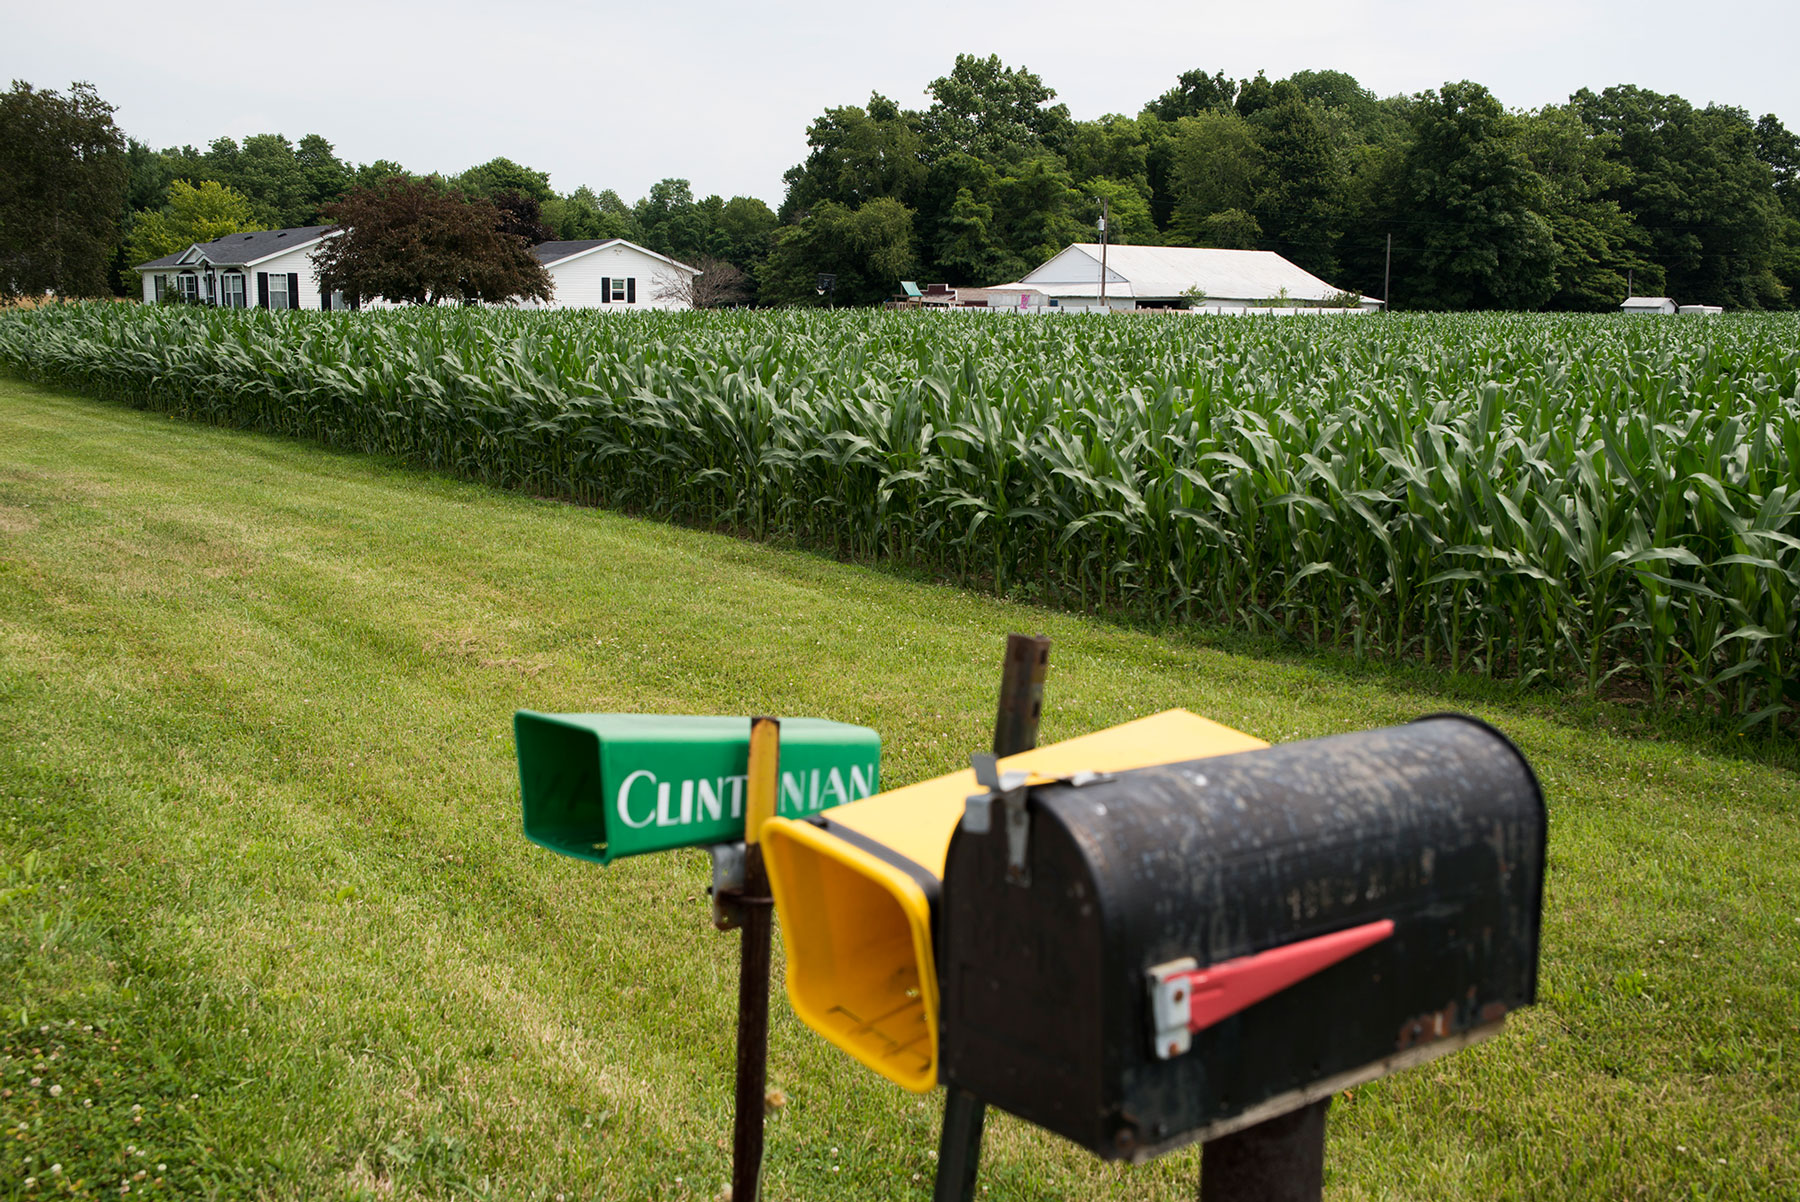 Mailboxes and a cornfield create a typical scene in Newport, Indiana. Just past the cornfield, several people are being baptized in a pastor's pool, making this a special day for the town. (Roman Knertser/News21)